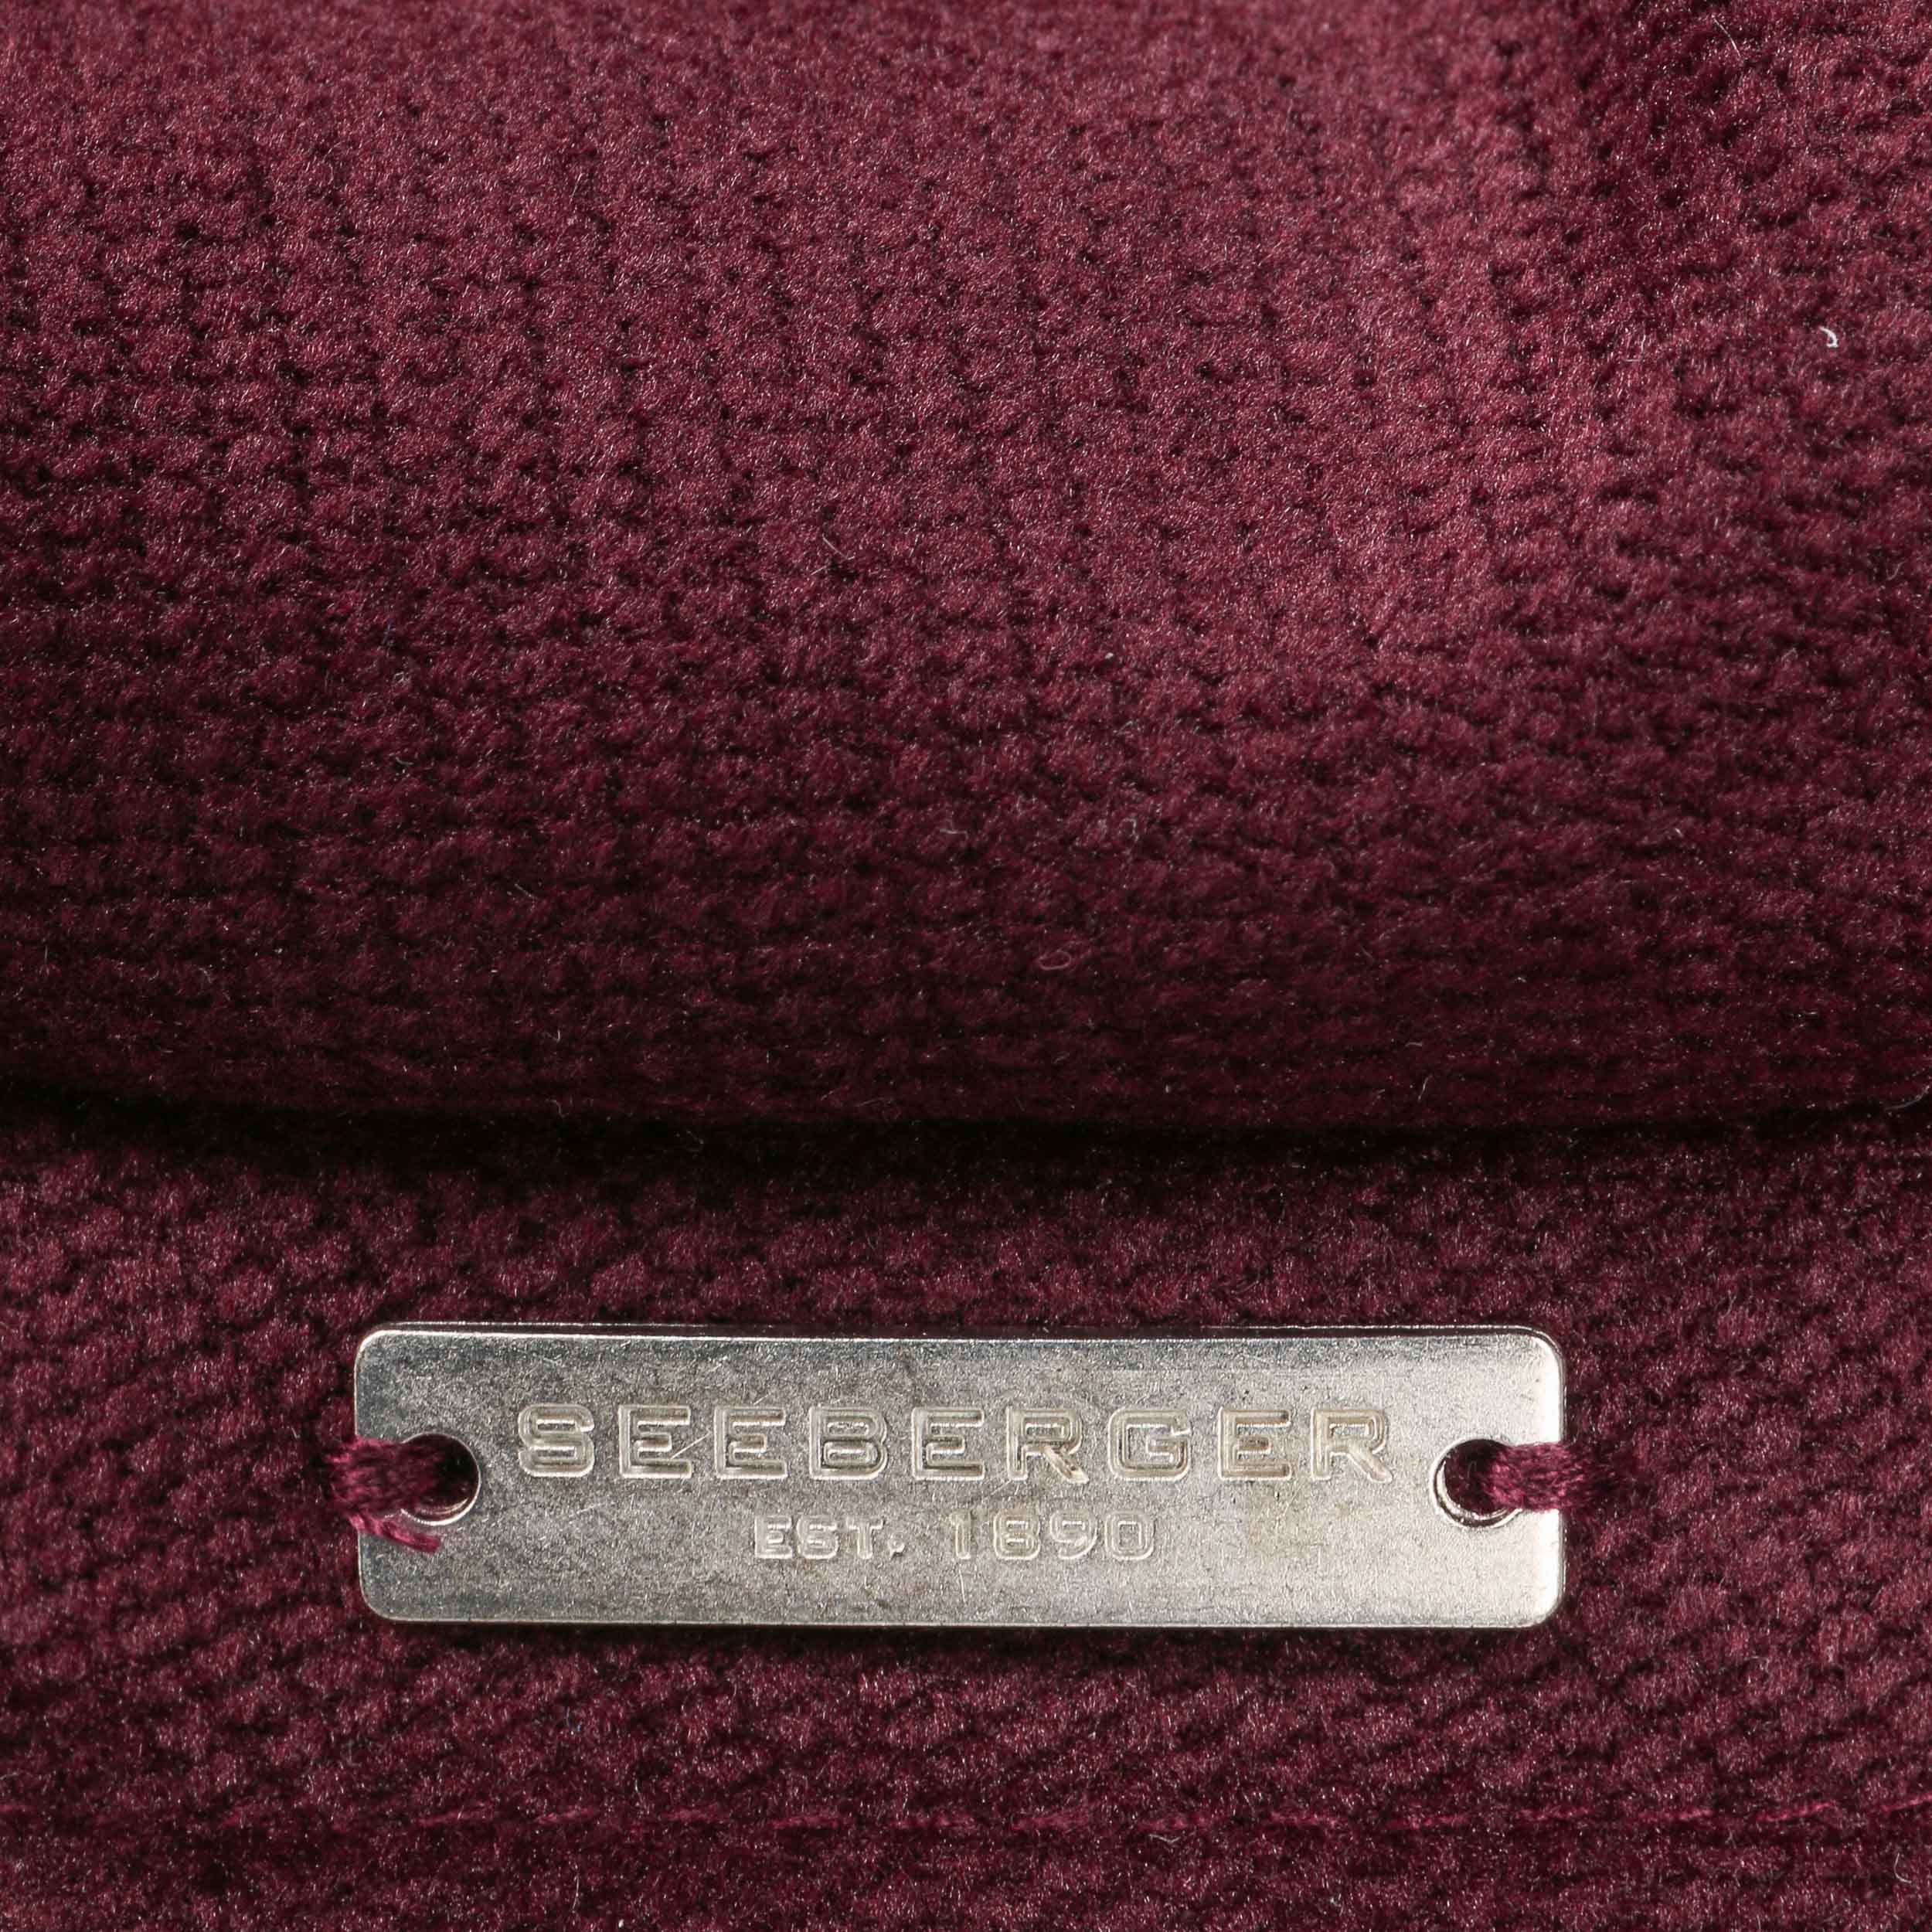 ... Berretto Newsboy in Velluto by Seeberger - rosso bordeaux 5 f9f663269f74